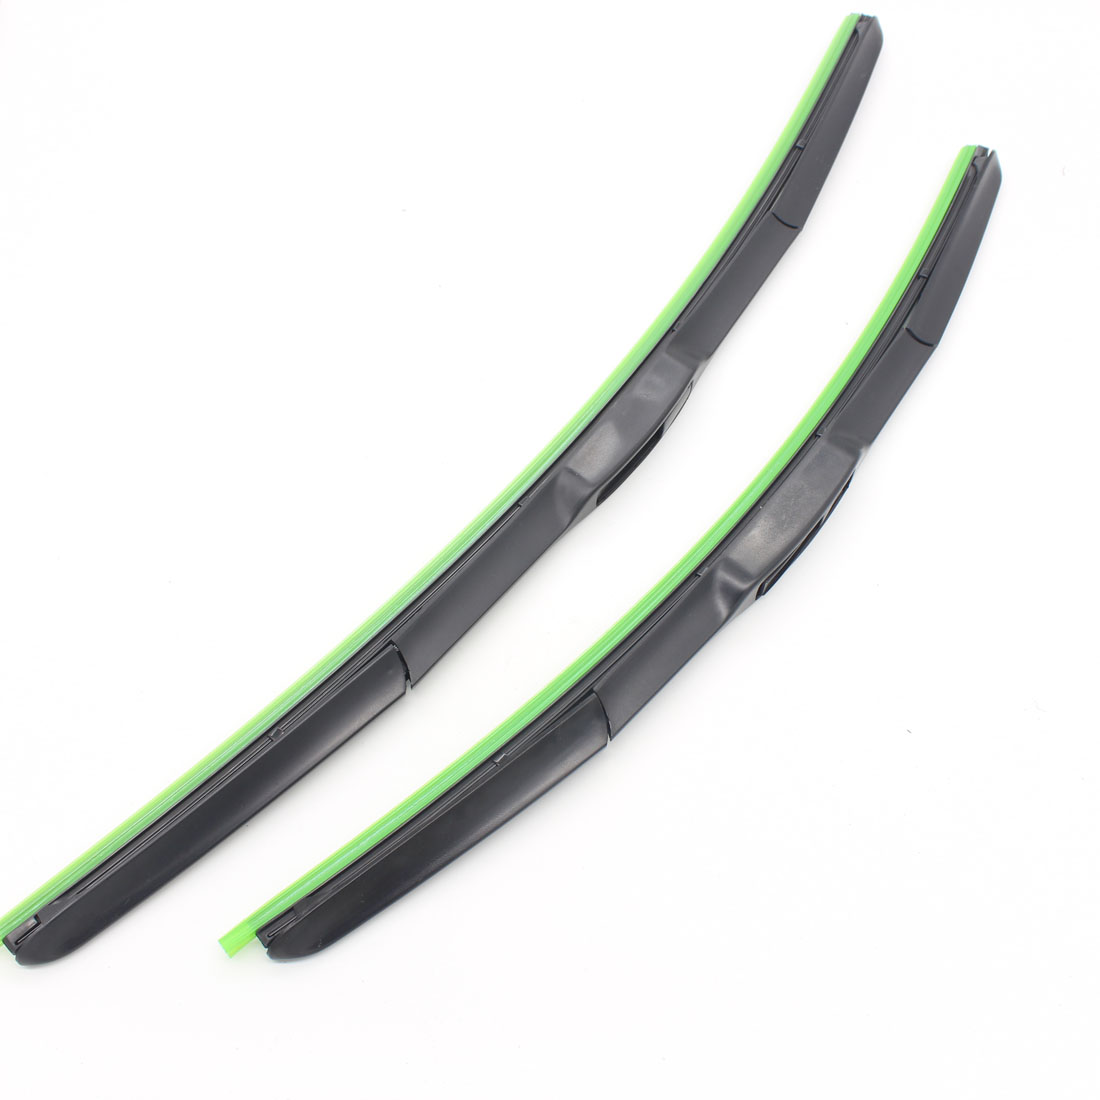 Dongzhen car windscreen windshield rain wiper blade replacement natural rubber fit for toyota camry 2006